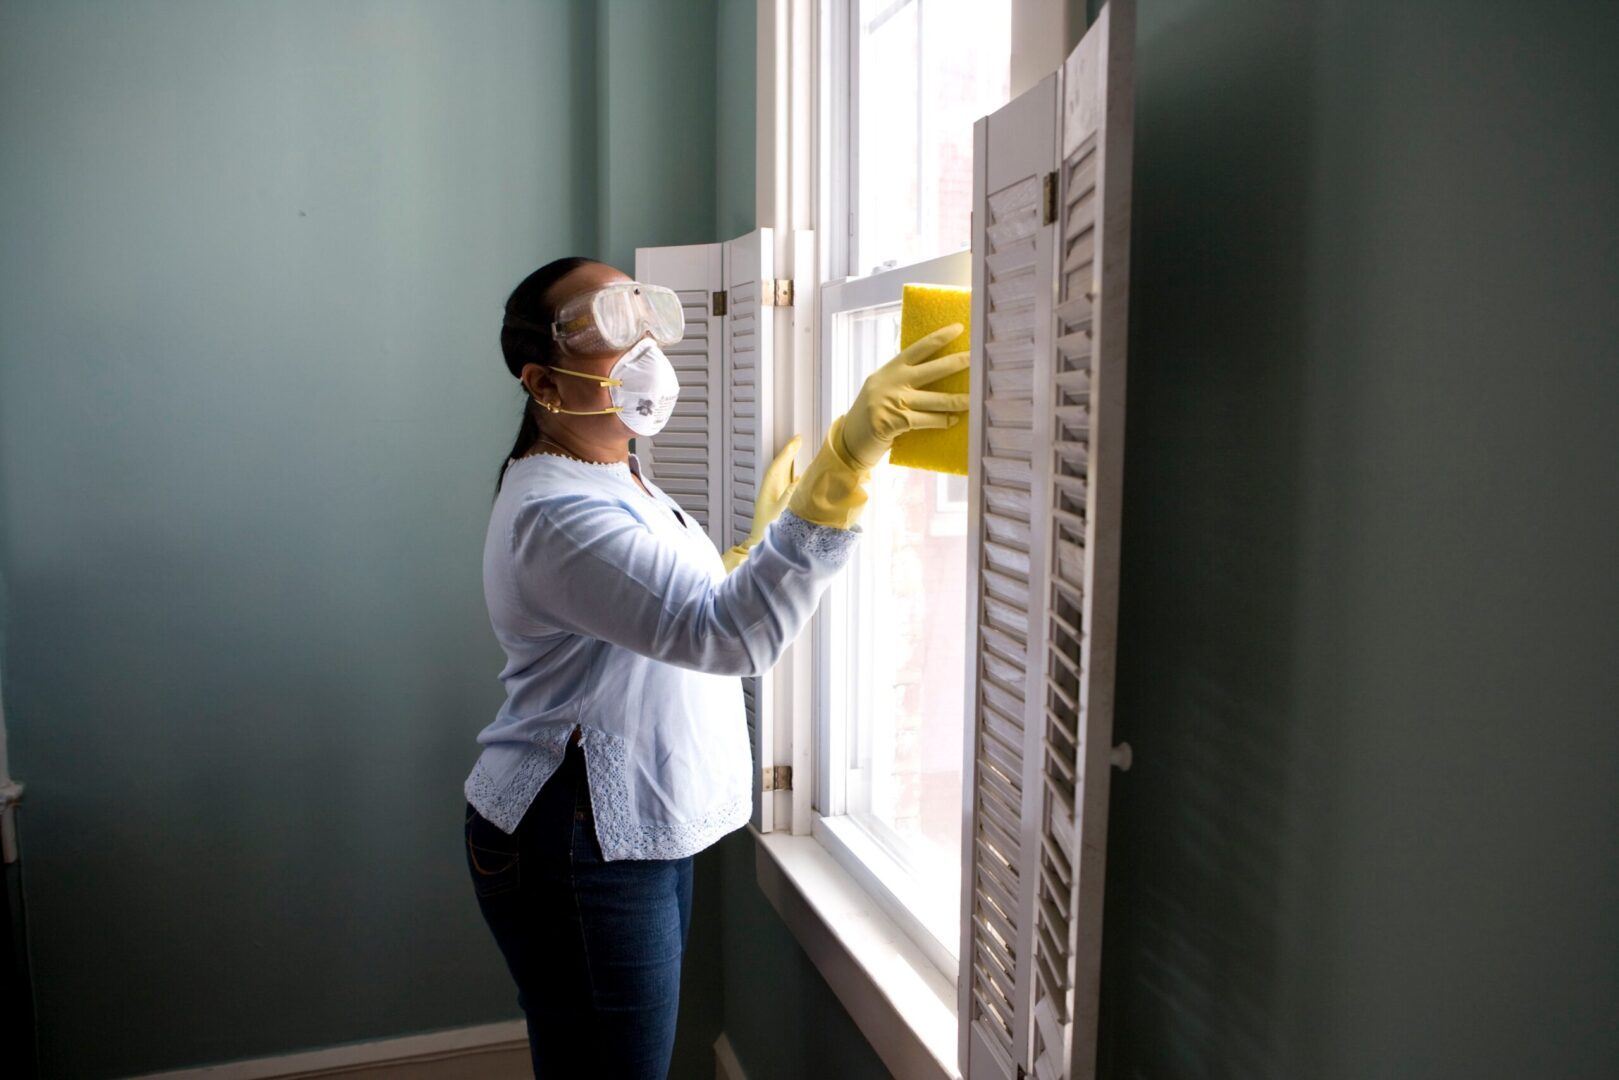 Professional post construction cleaning services and cleanup solutions in Atlanta, Marietta, Alpharetta and Smyrna.